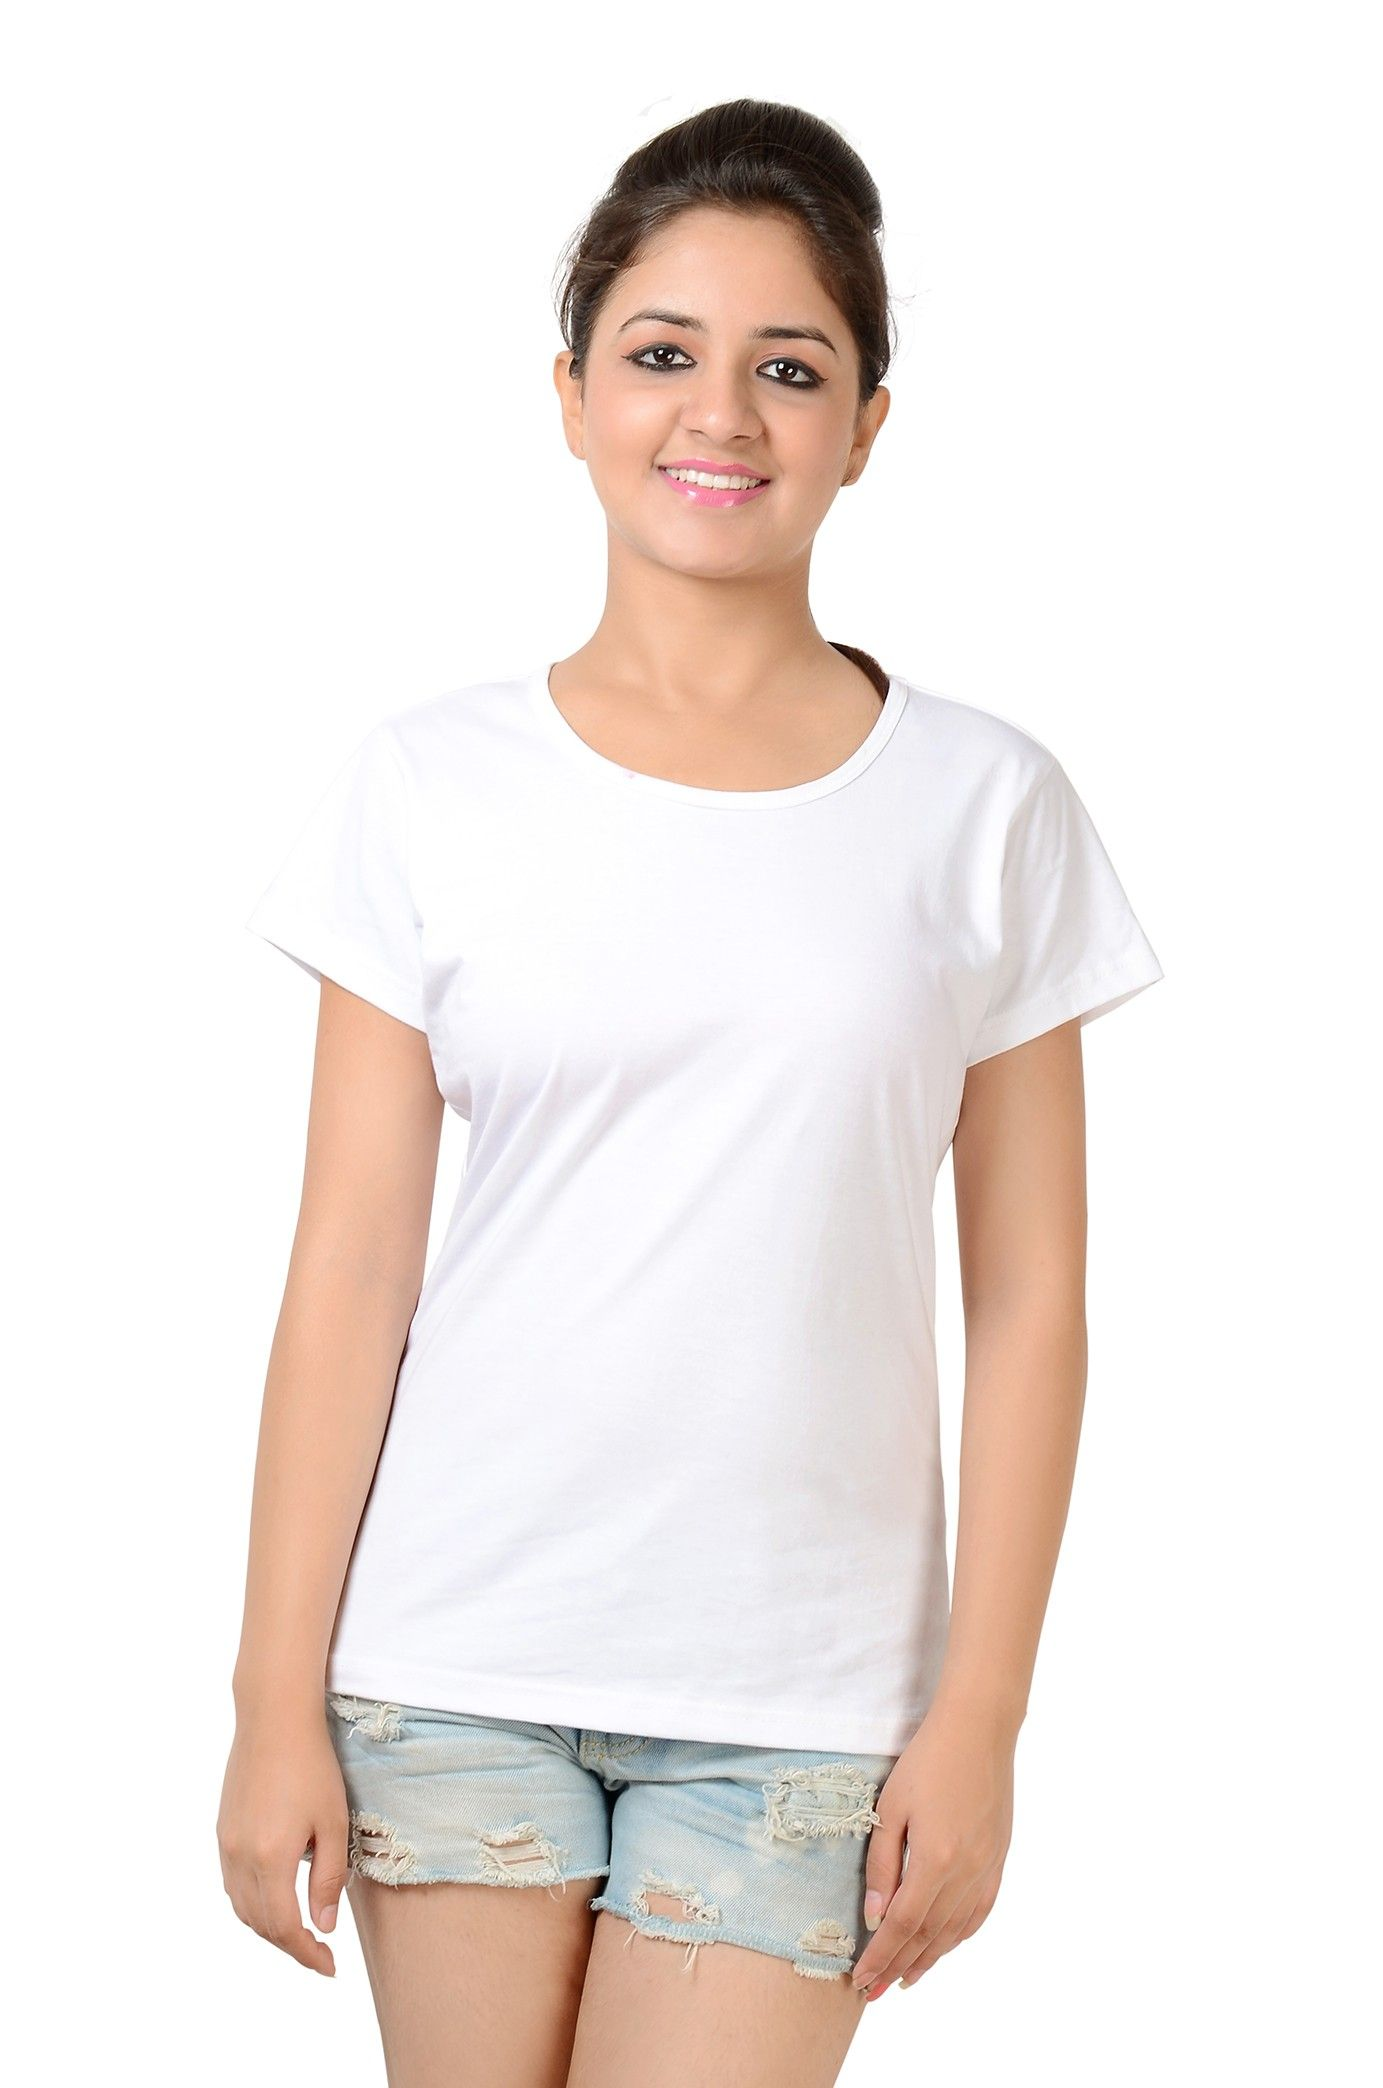 Women's White Round Neck T-Shirt Half Sleeve | routine remedies ...